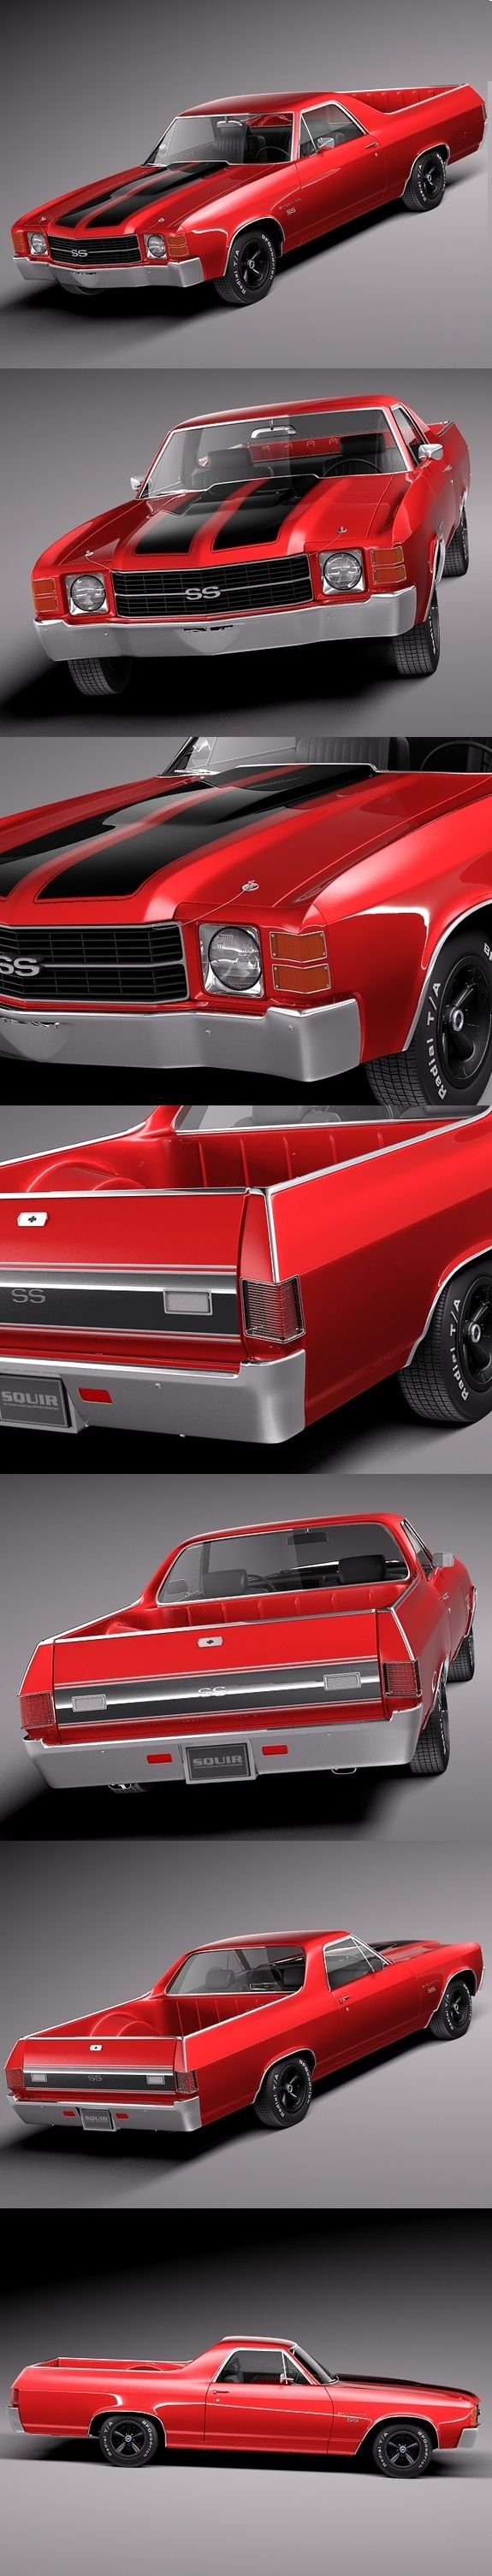 Chevrolet el Camino 1971                                                                                                                                                                                 More